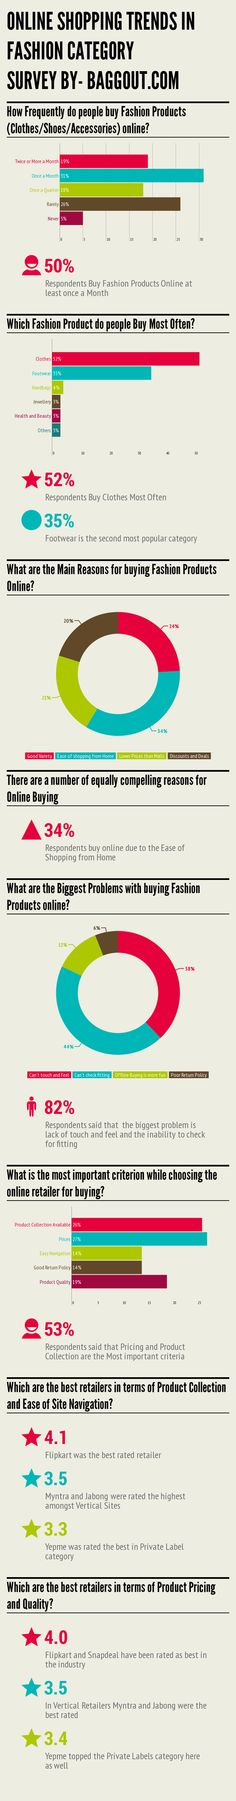 [Infographic] Online shopping trends in Fashion Category : Snapdeal and Flipkart are rated best in the Industry